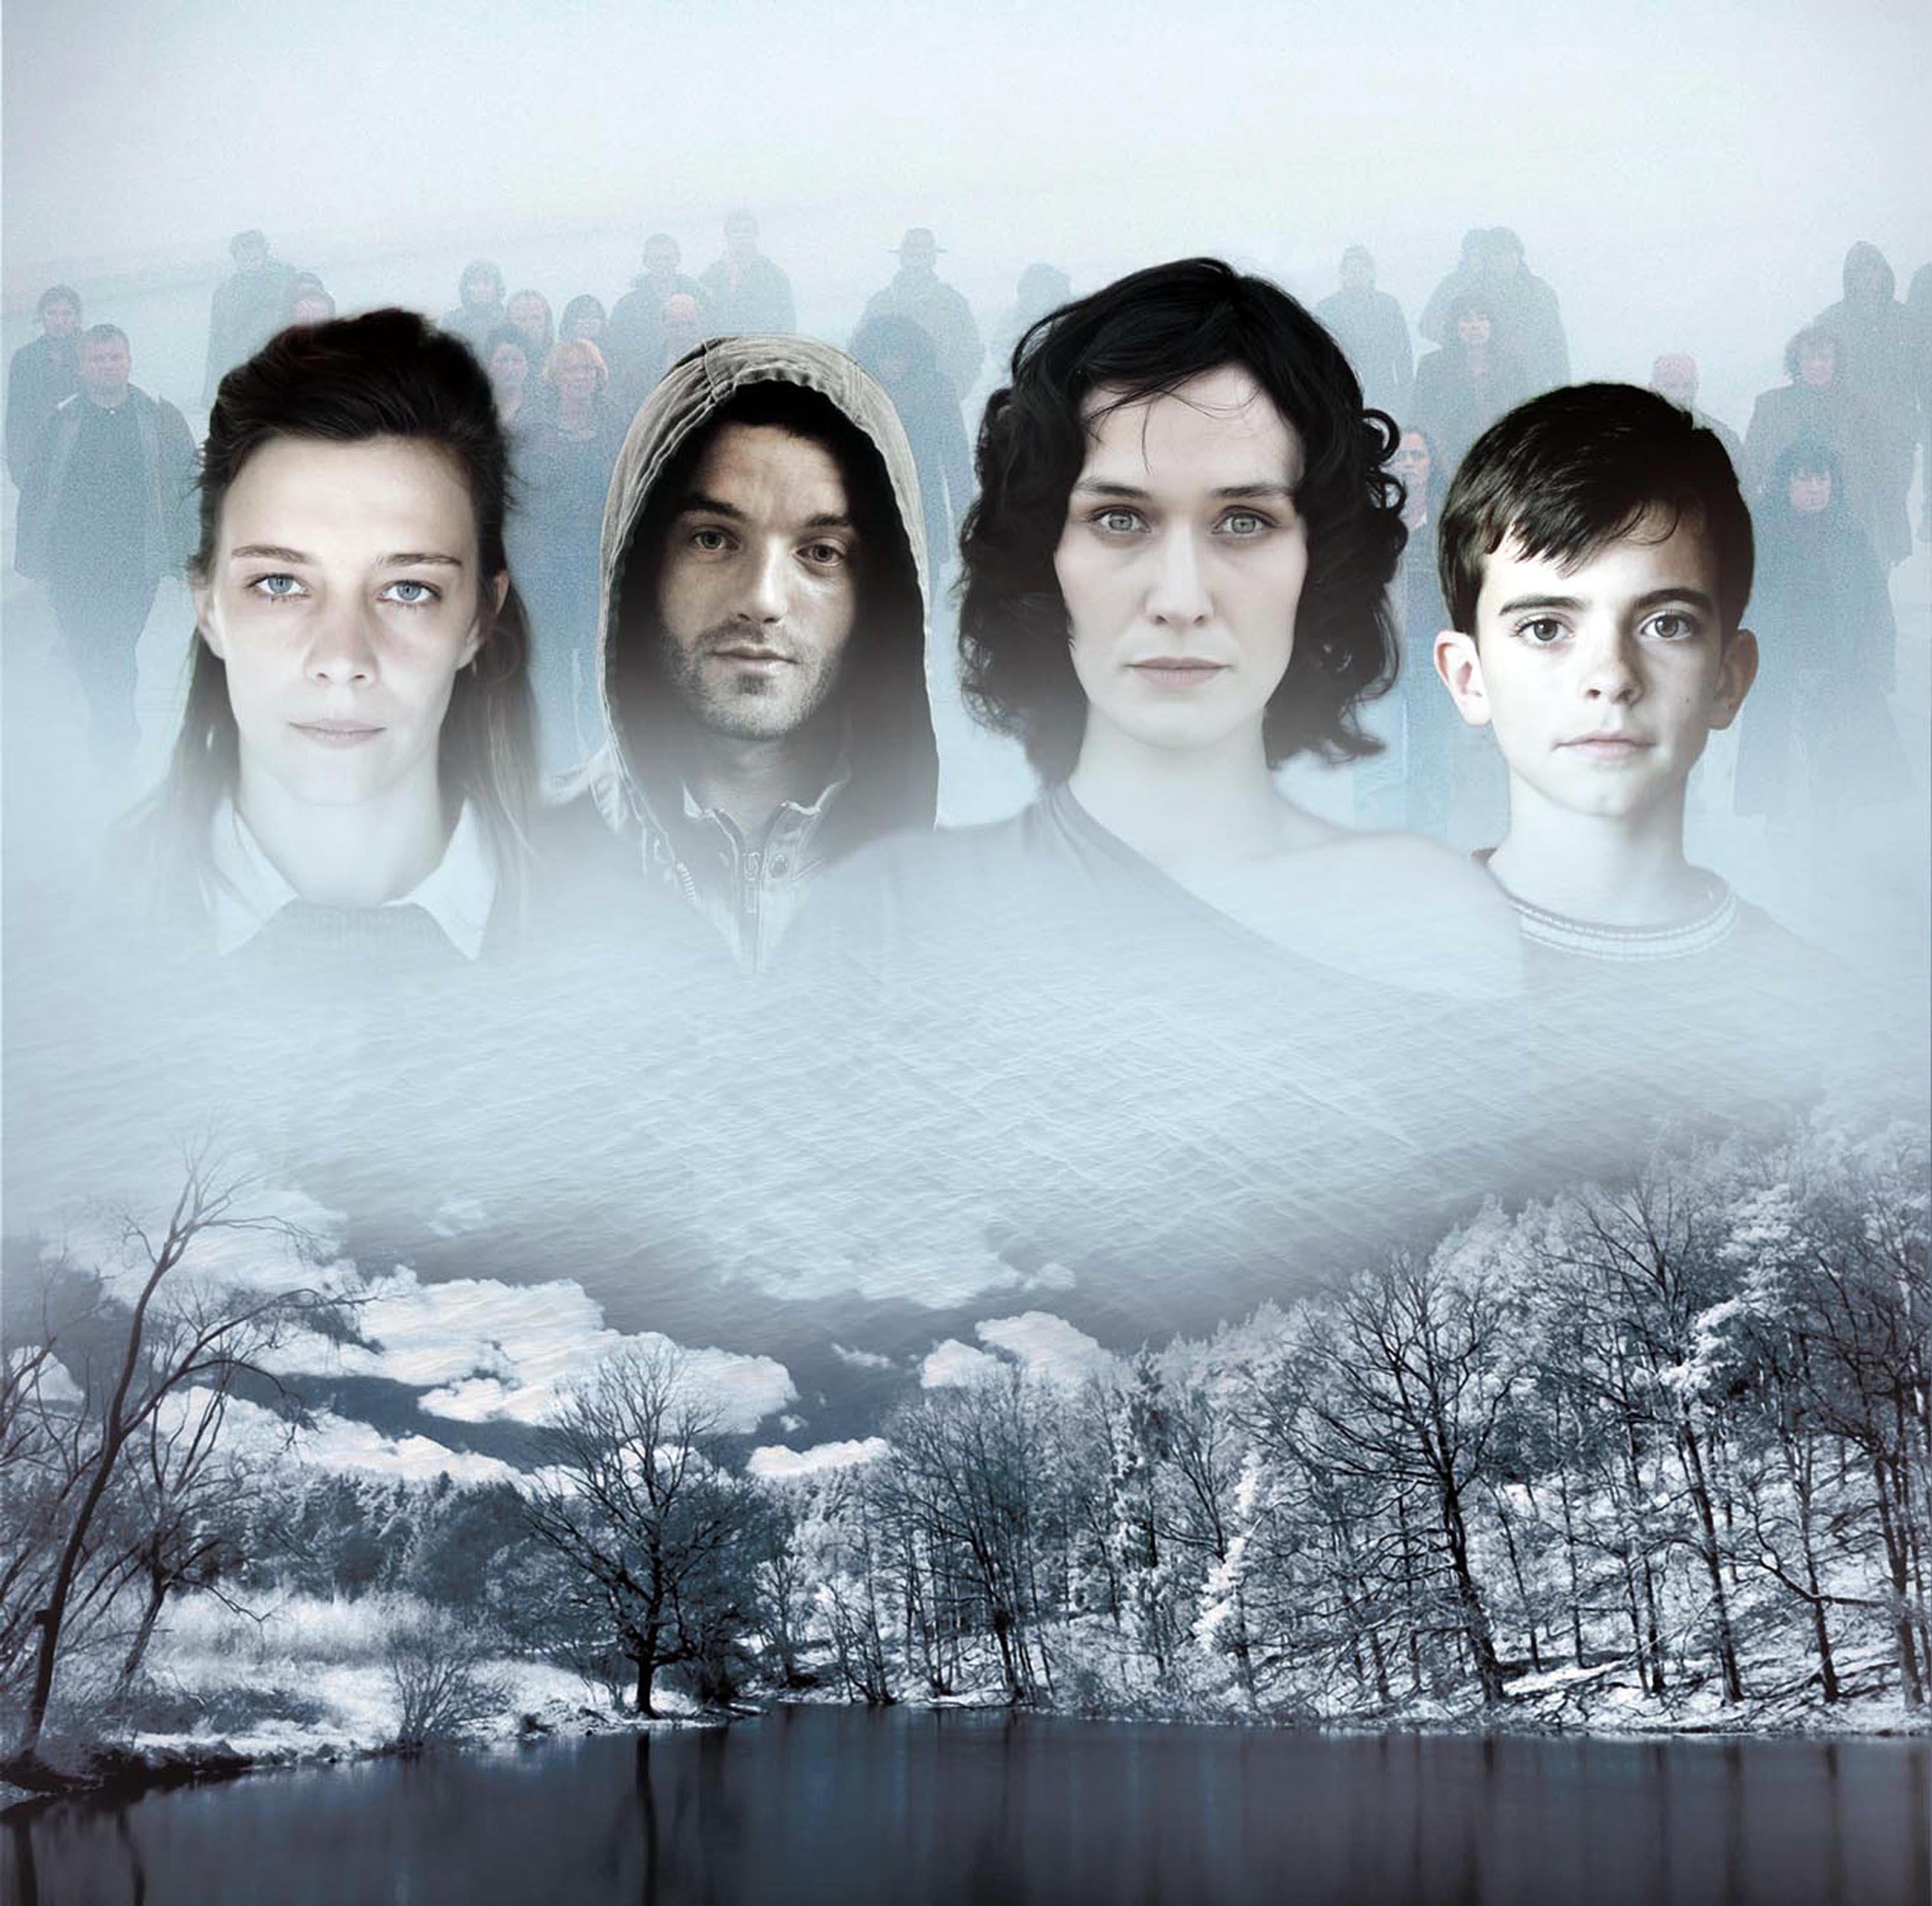 The Returned: All the damned theories